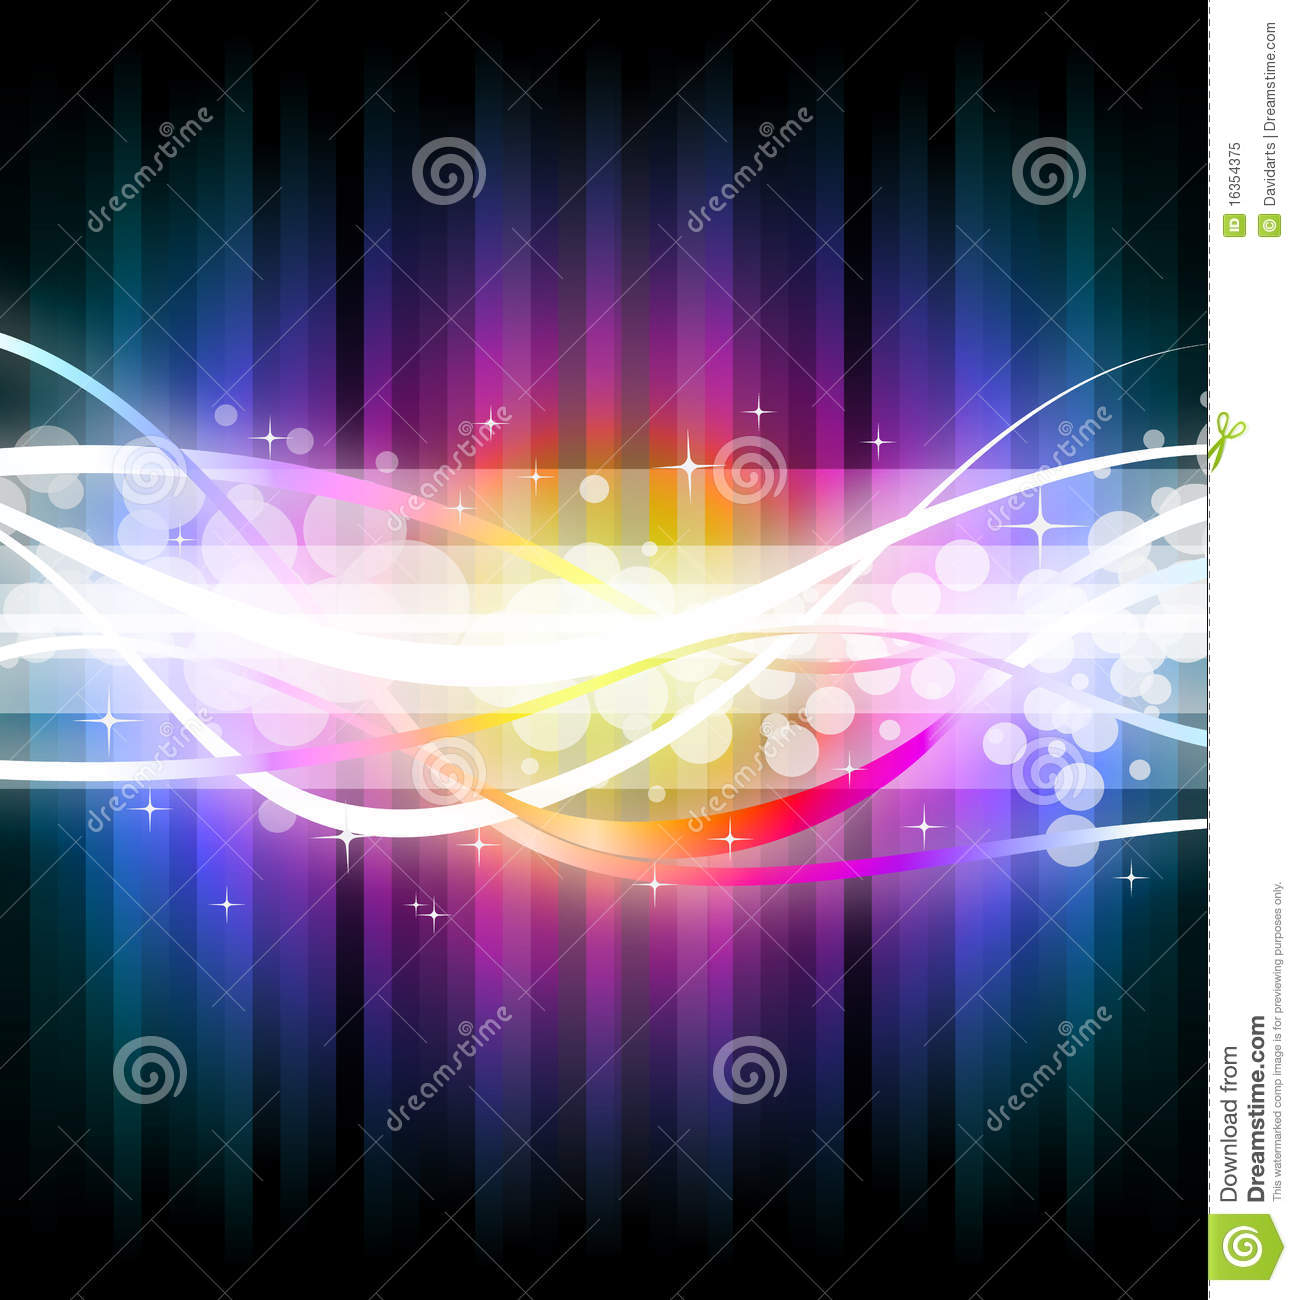 colorful business background for flyers royalty stock photo colorful business background for flyers